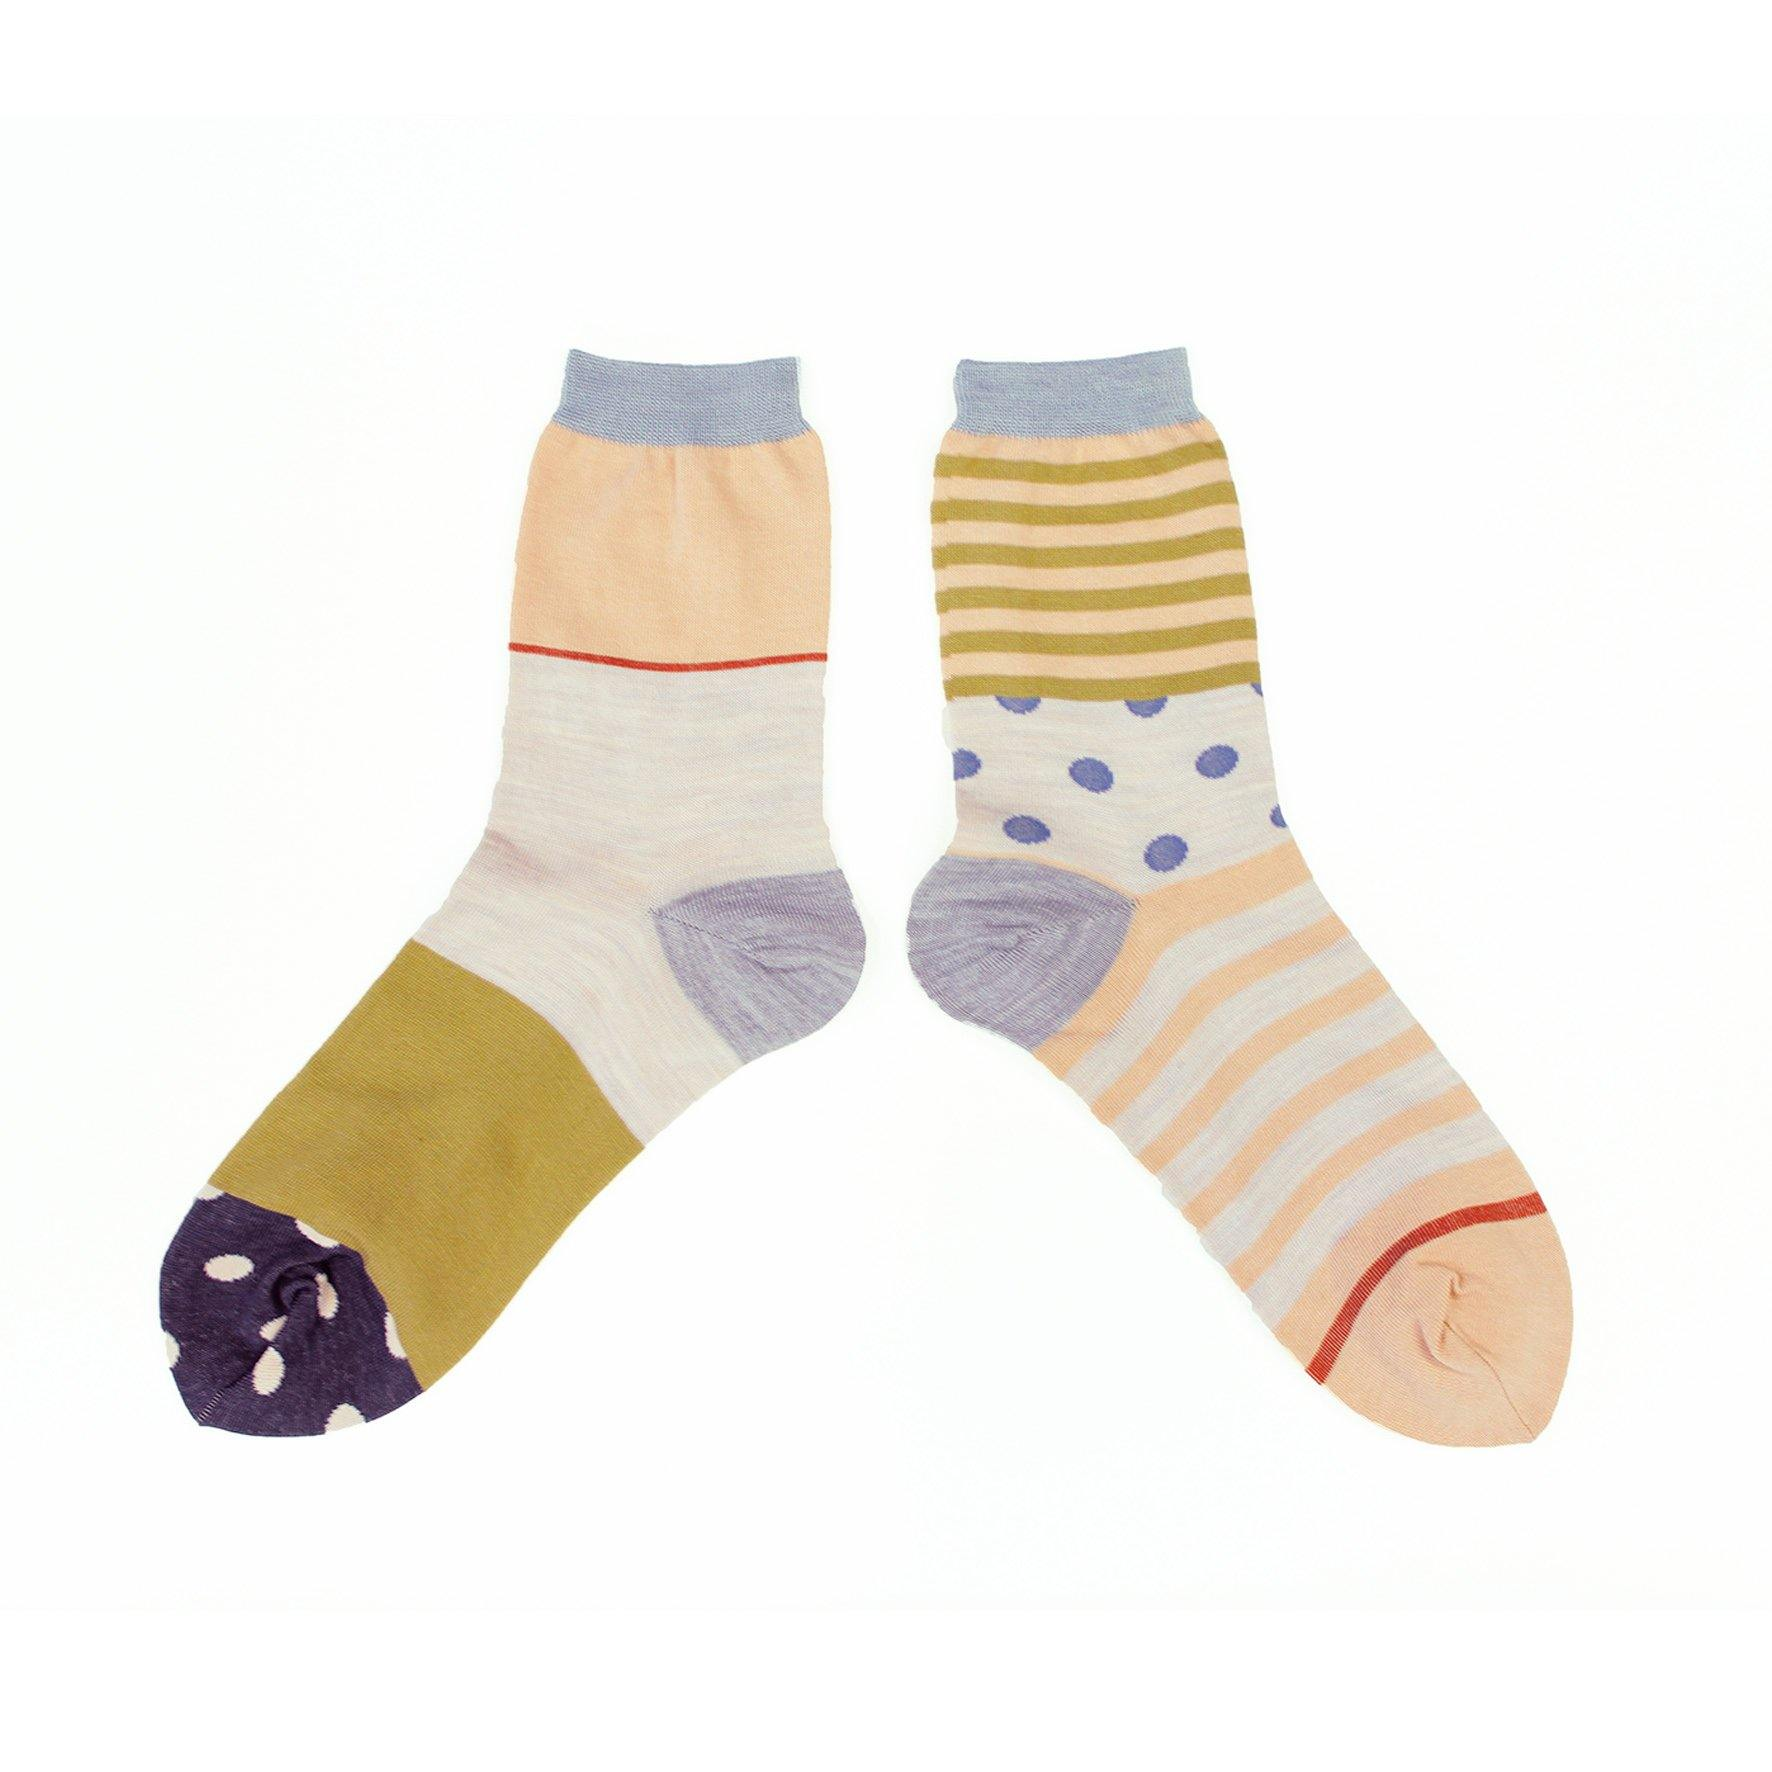 COQ Textile forest border socks -2 colours - MMW Concept